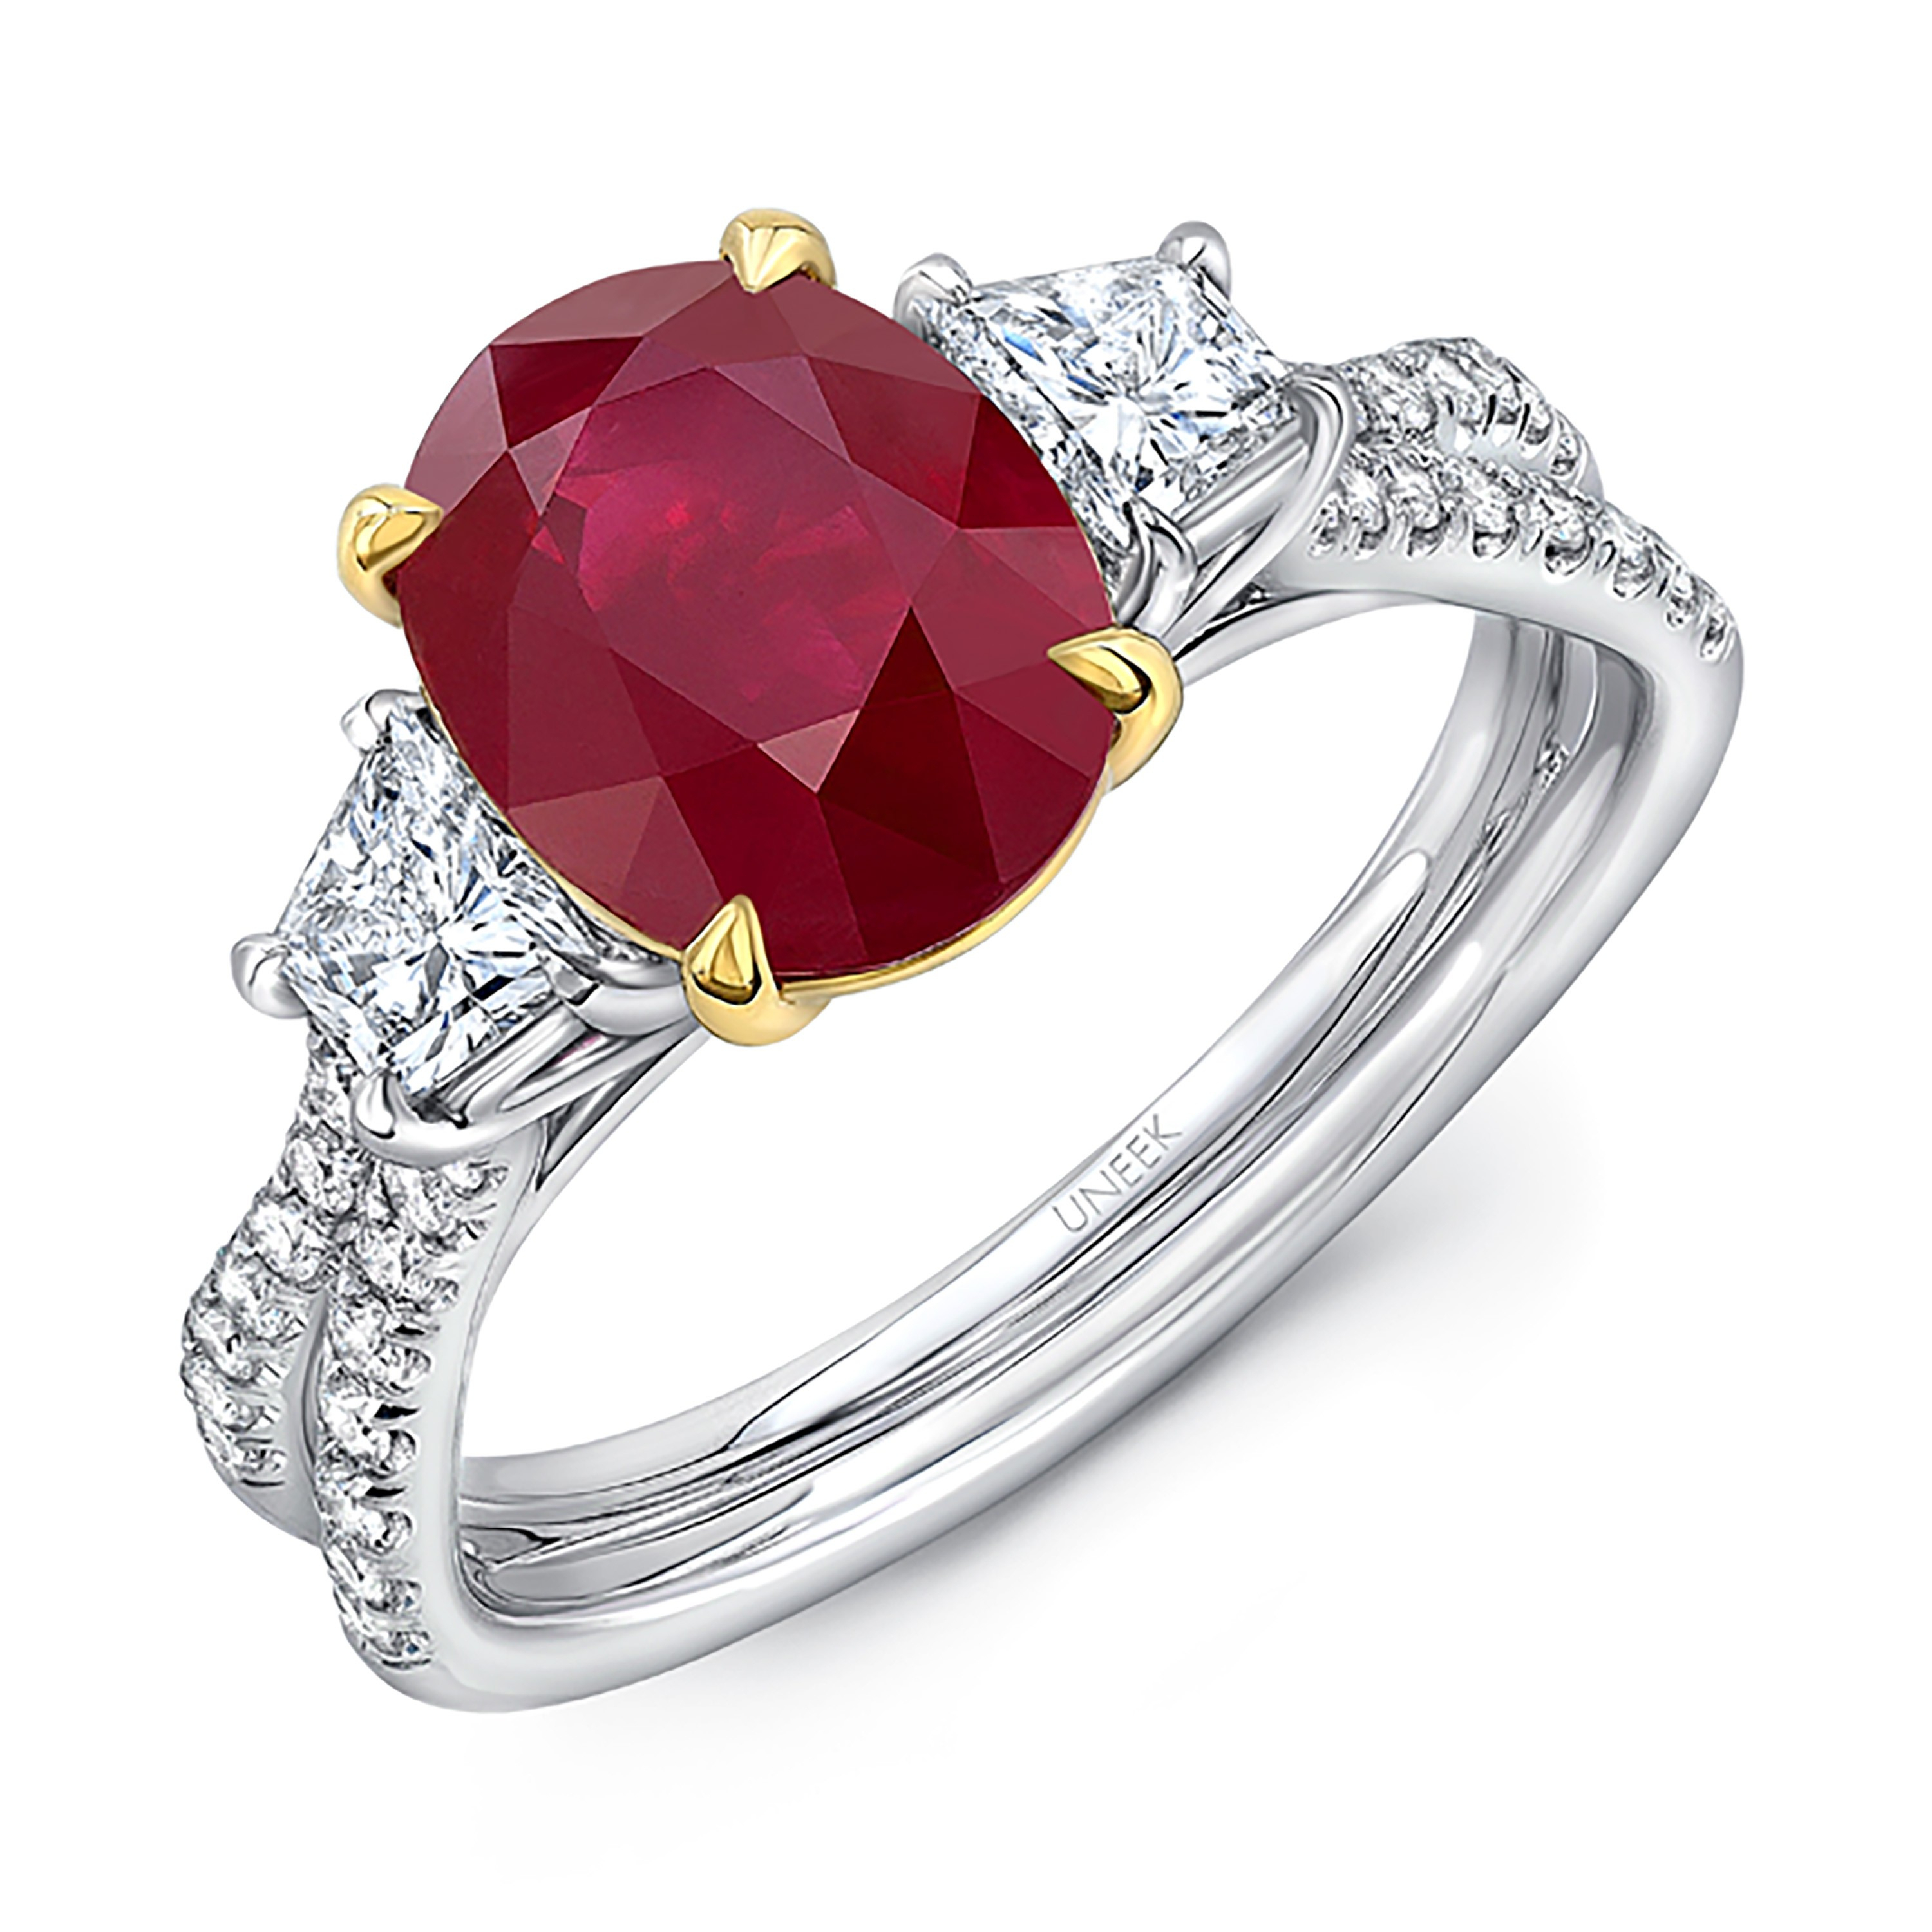 Uneek Ruby And Diamond Three Stone Ring With Oval Ruby Intended For Oval Shaped Ruby Micropavé Rings (Gallery 23 of 25)